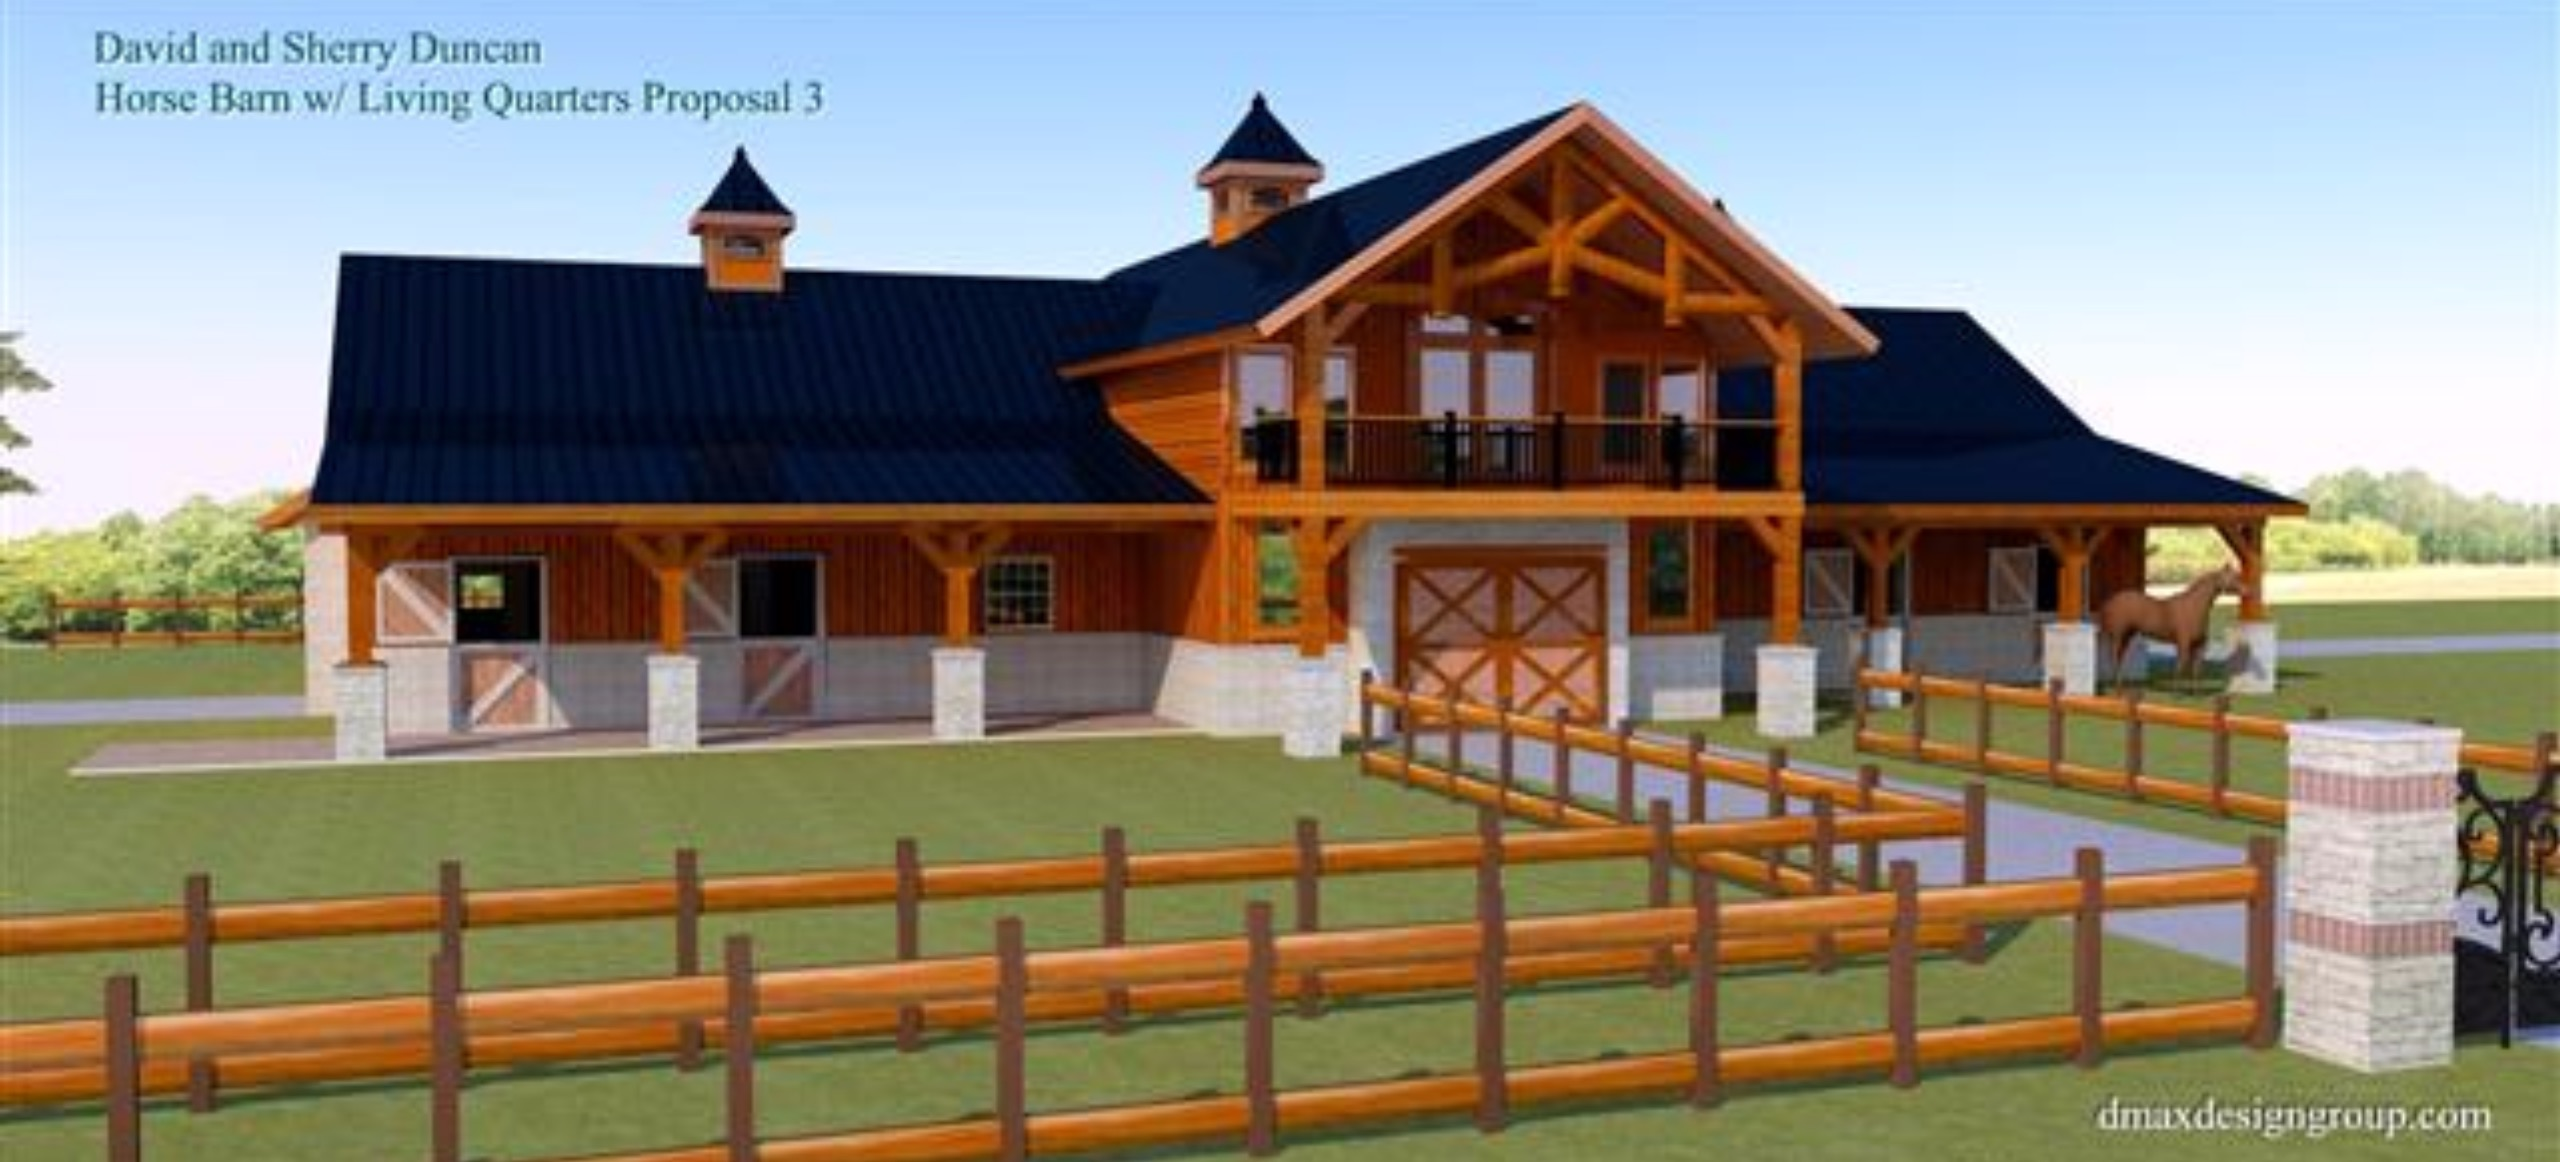 Barns and buildings quality barns and buildings horse for House horse barn plans